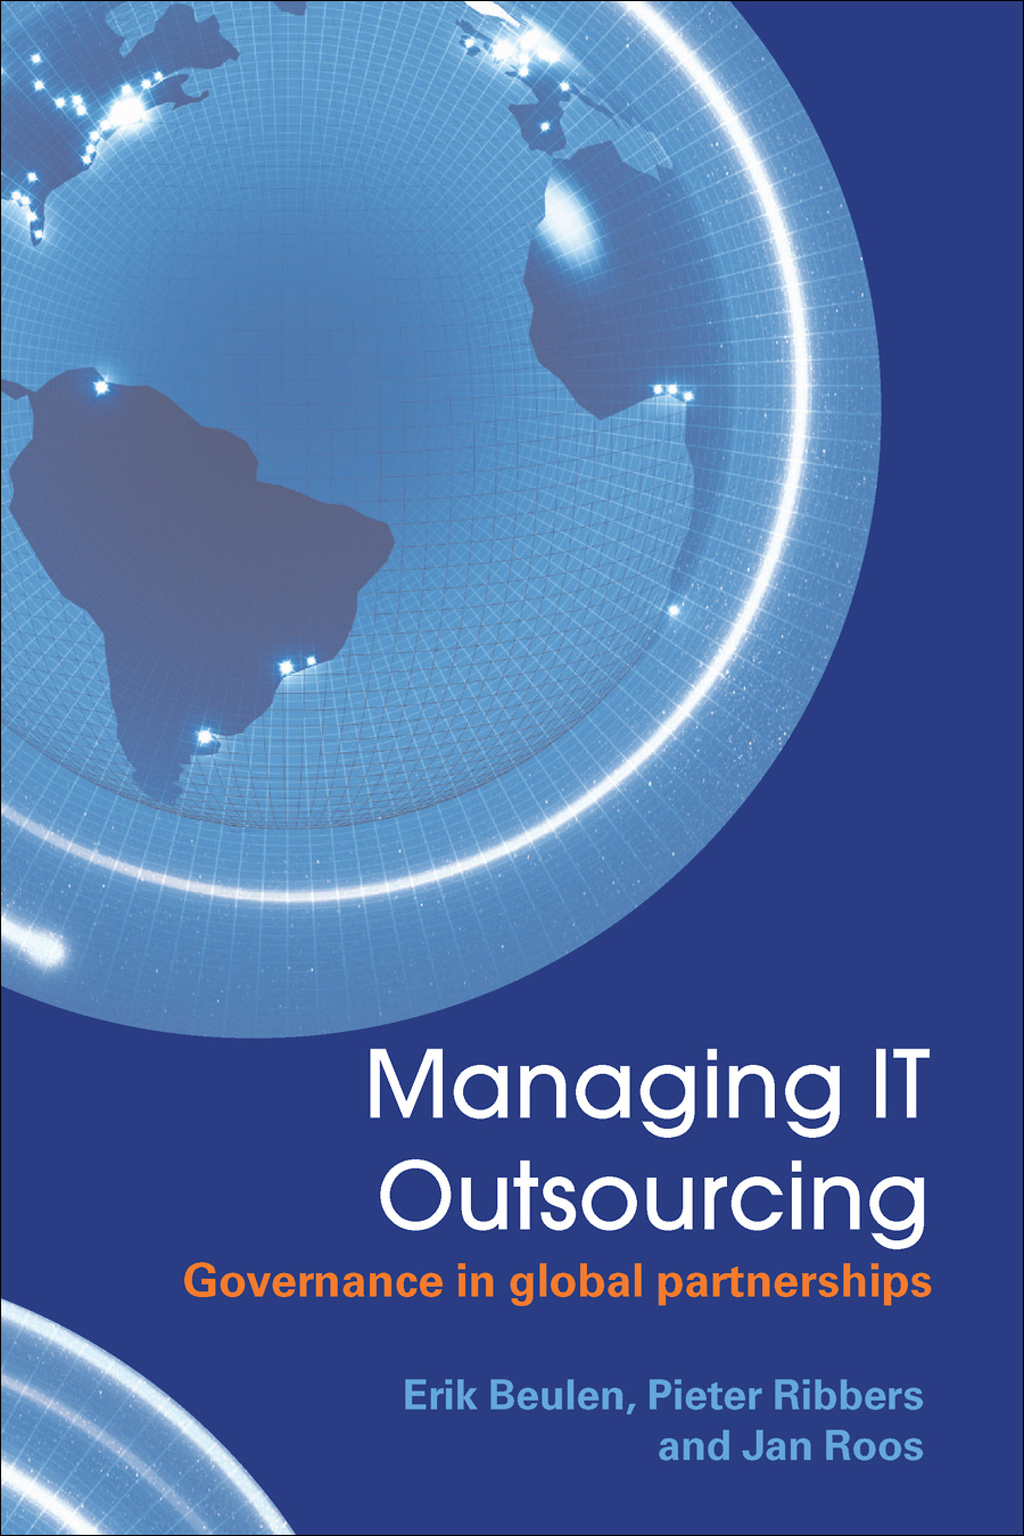 Managing IT Outsourcing Governance in Global Partnerships